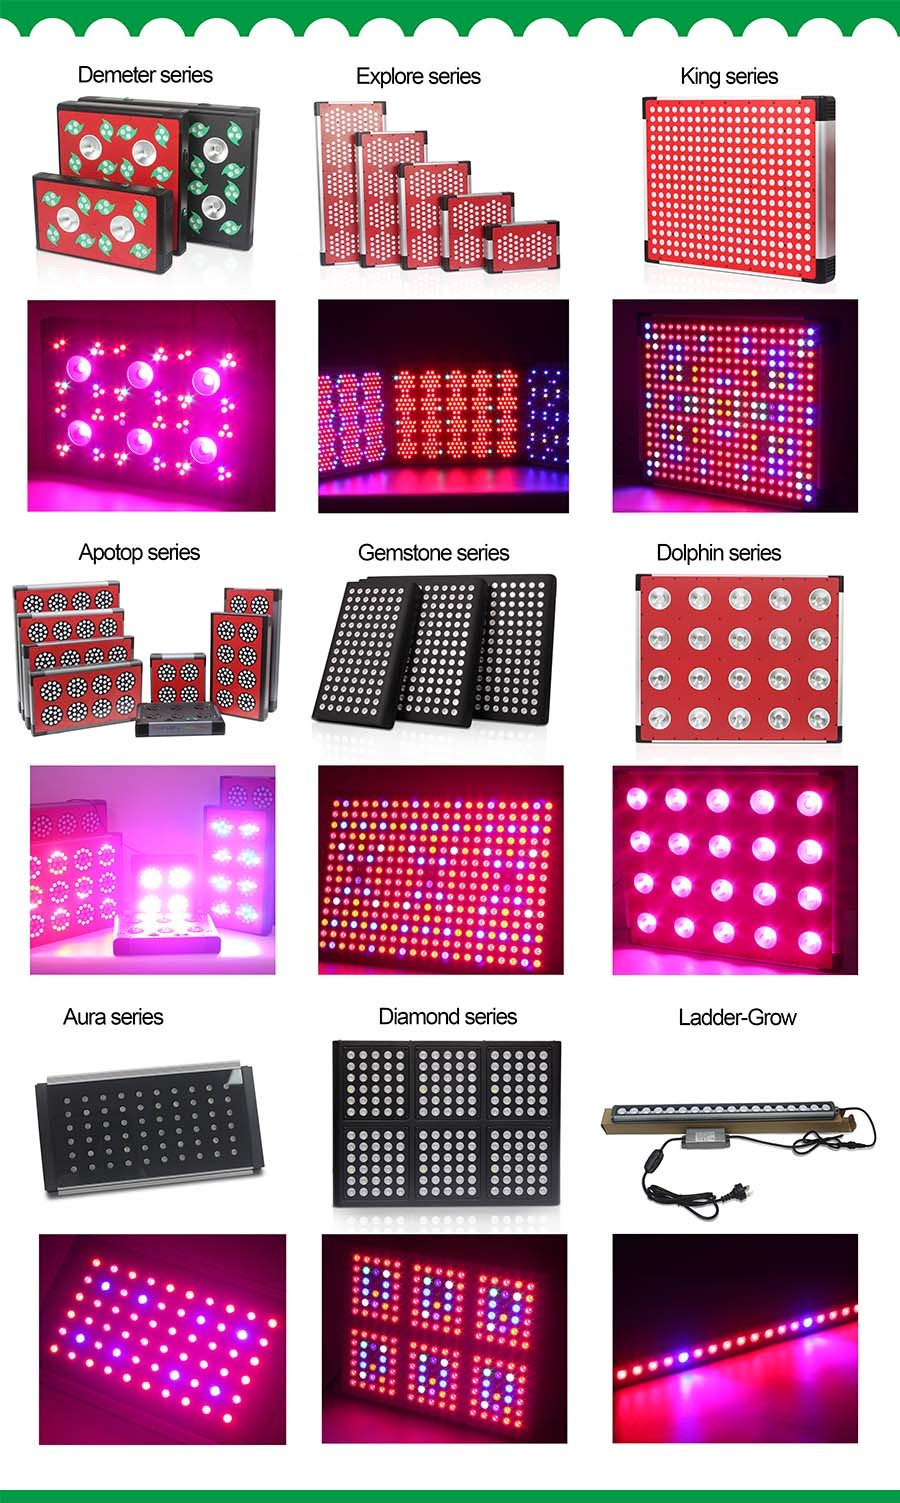 Herifi LED Grow Light 2.jpg